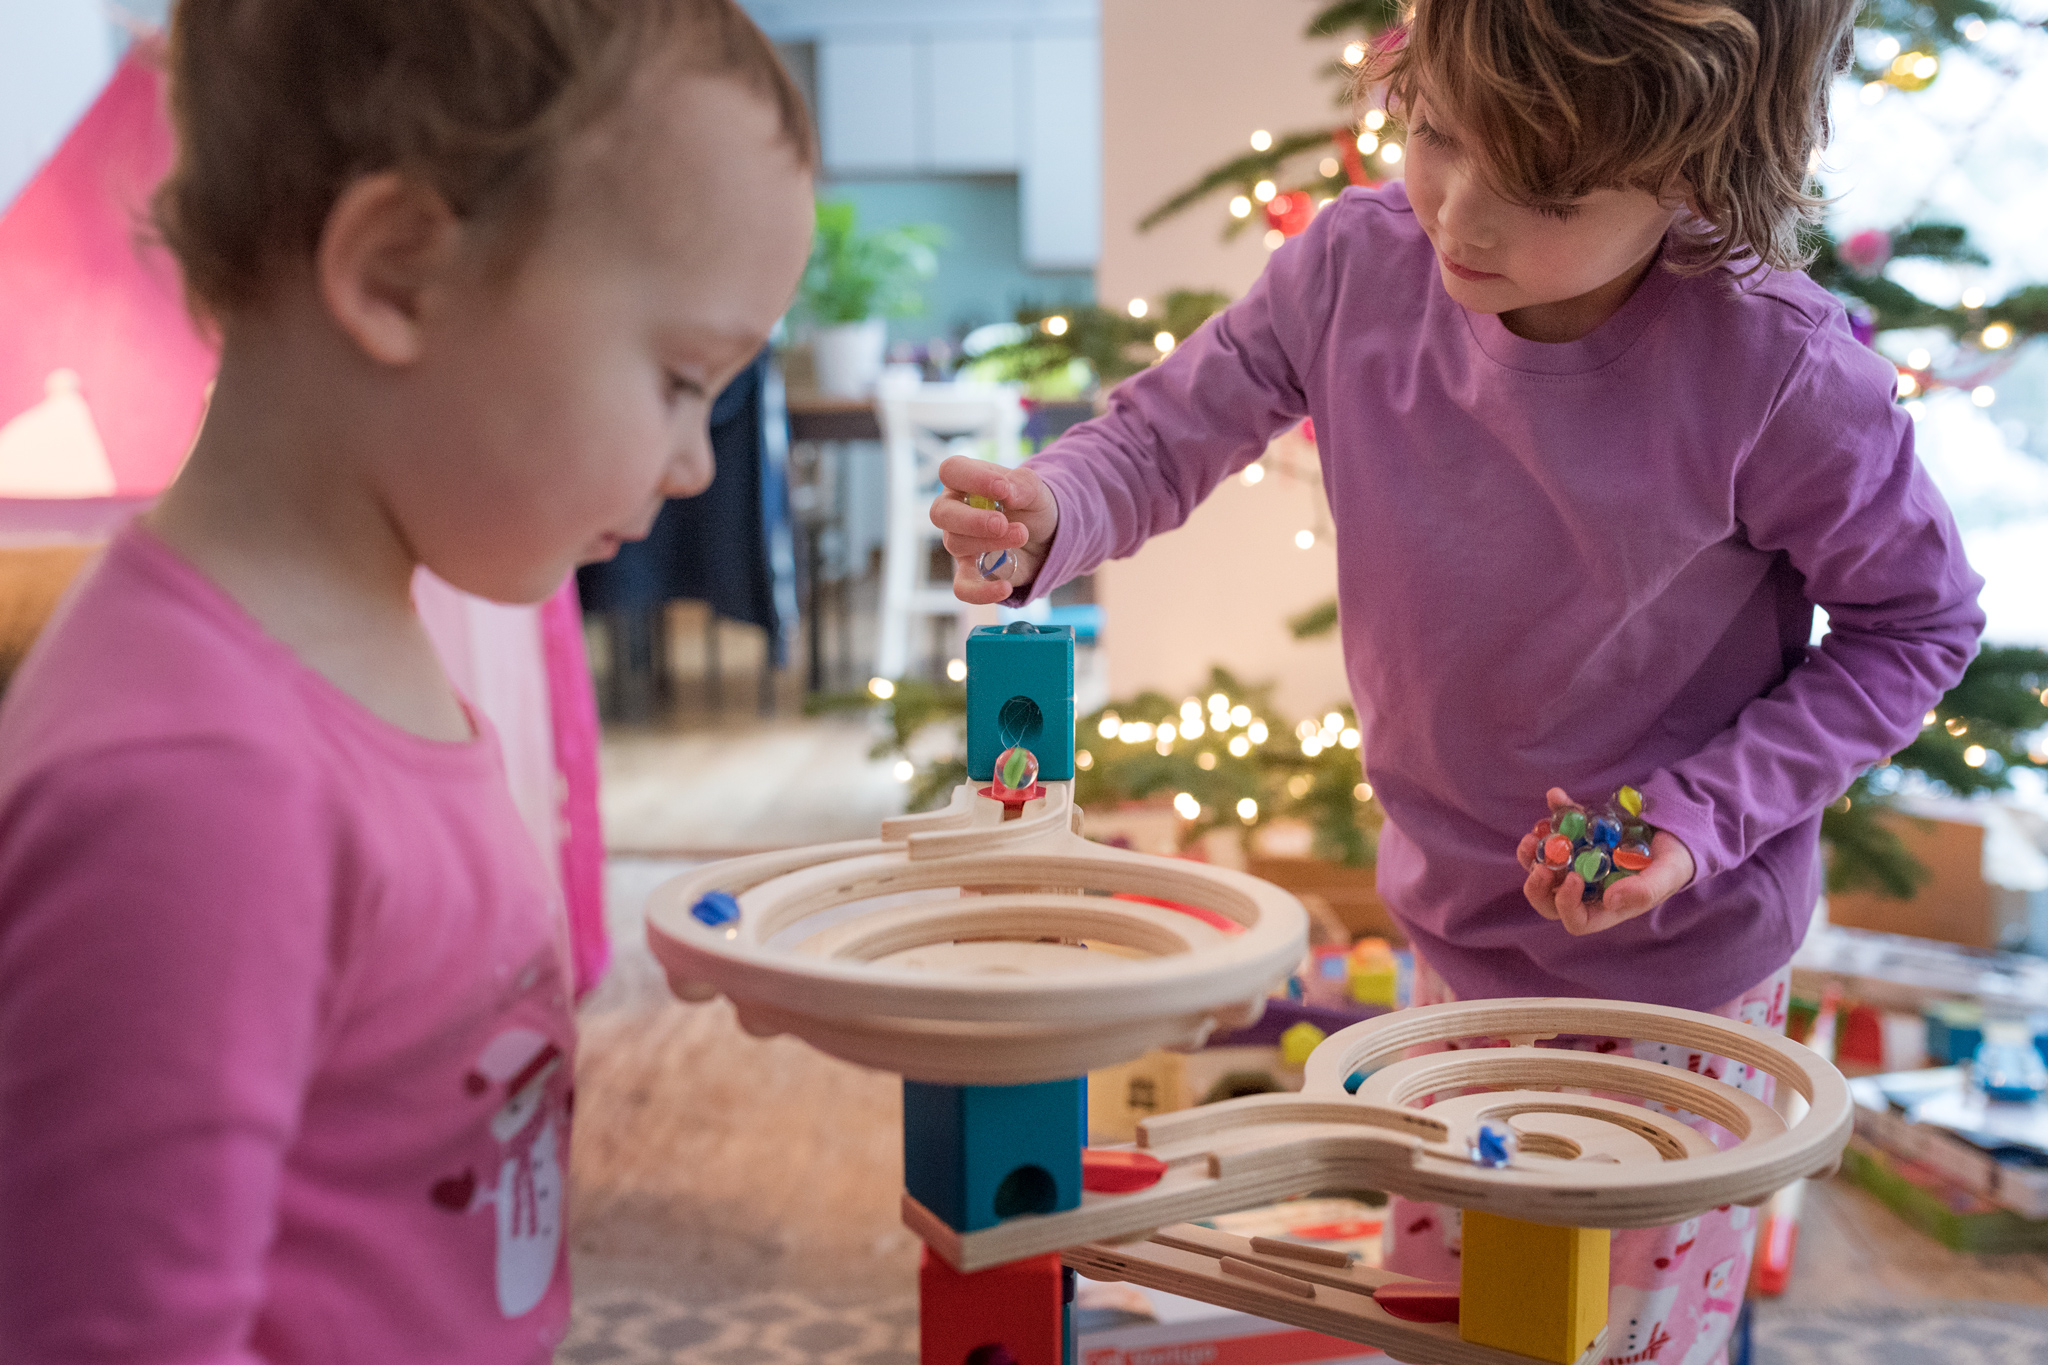 playing with their new marble run | amy selleck photography | amyselleck.com